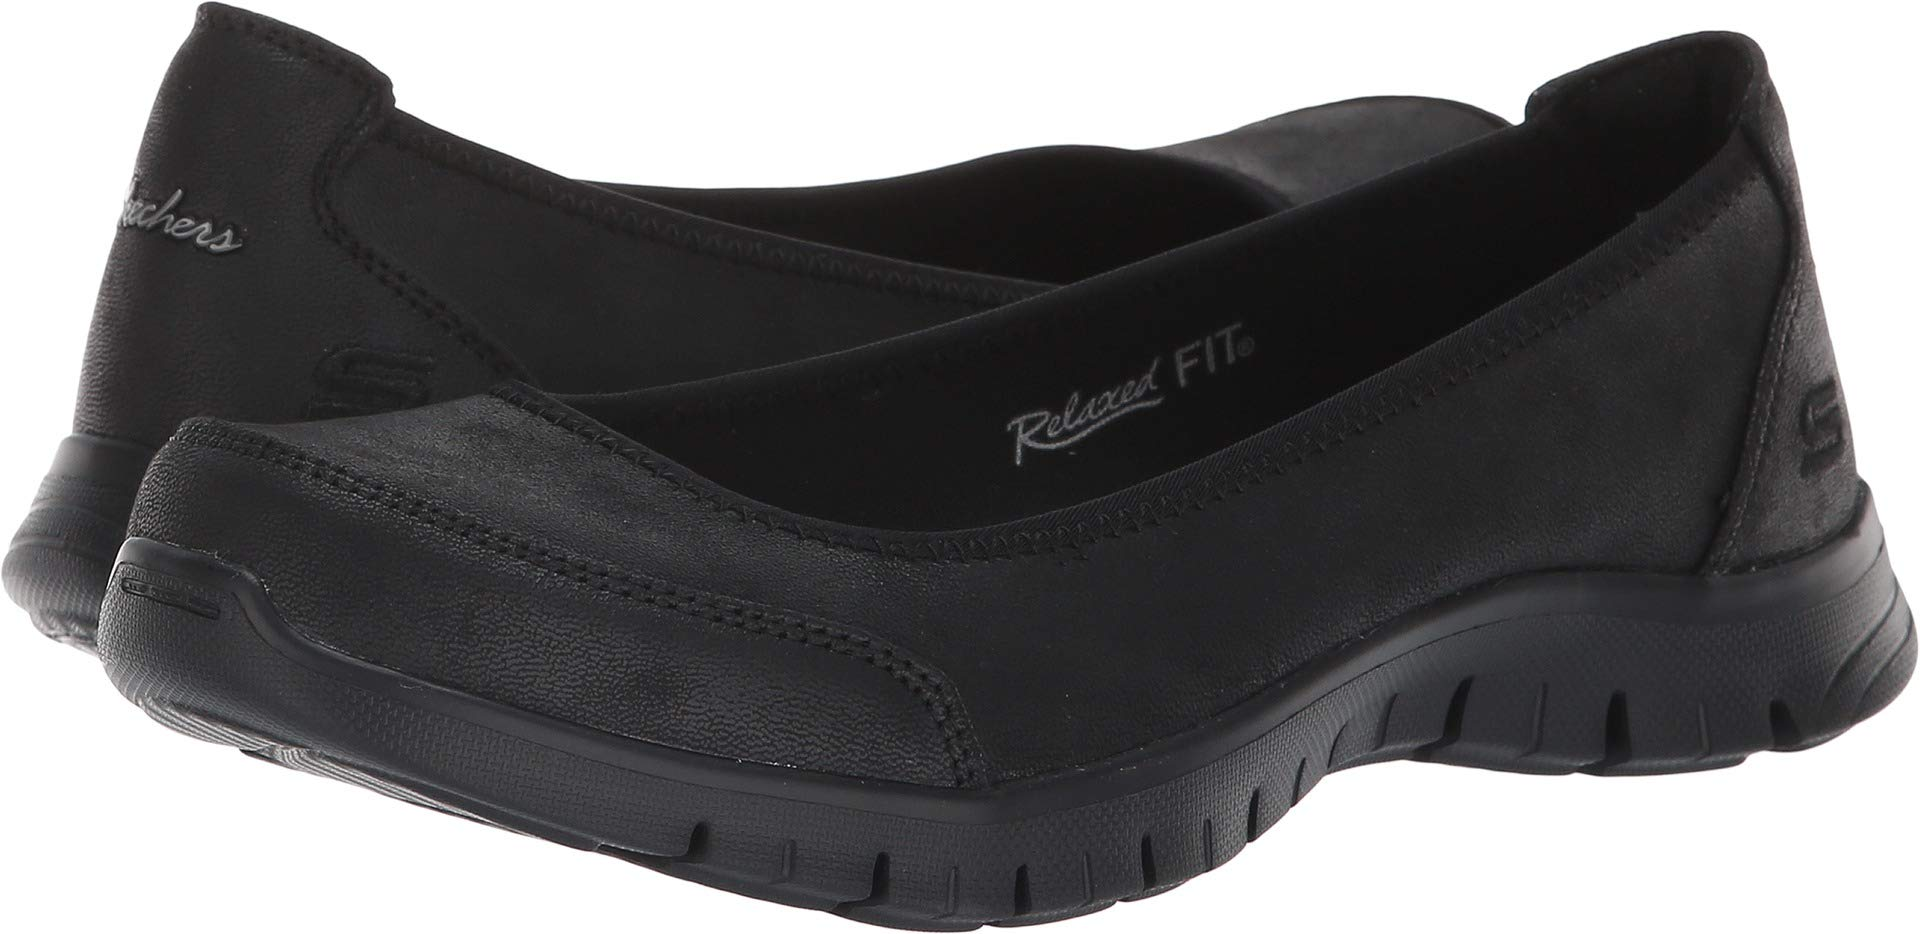 Skechers Relaxed Fit EZ Flex Renew Sweet Picture Womens Slip On Skimmer Sneakers Black 7.5